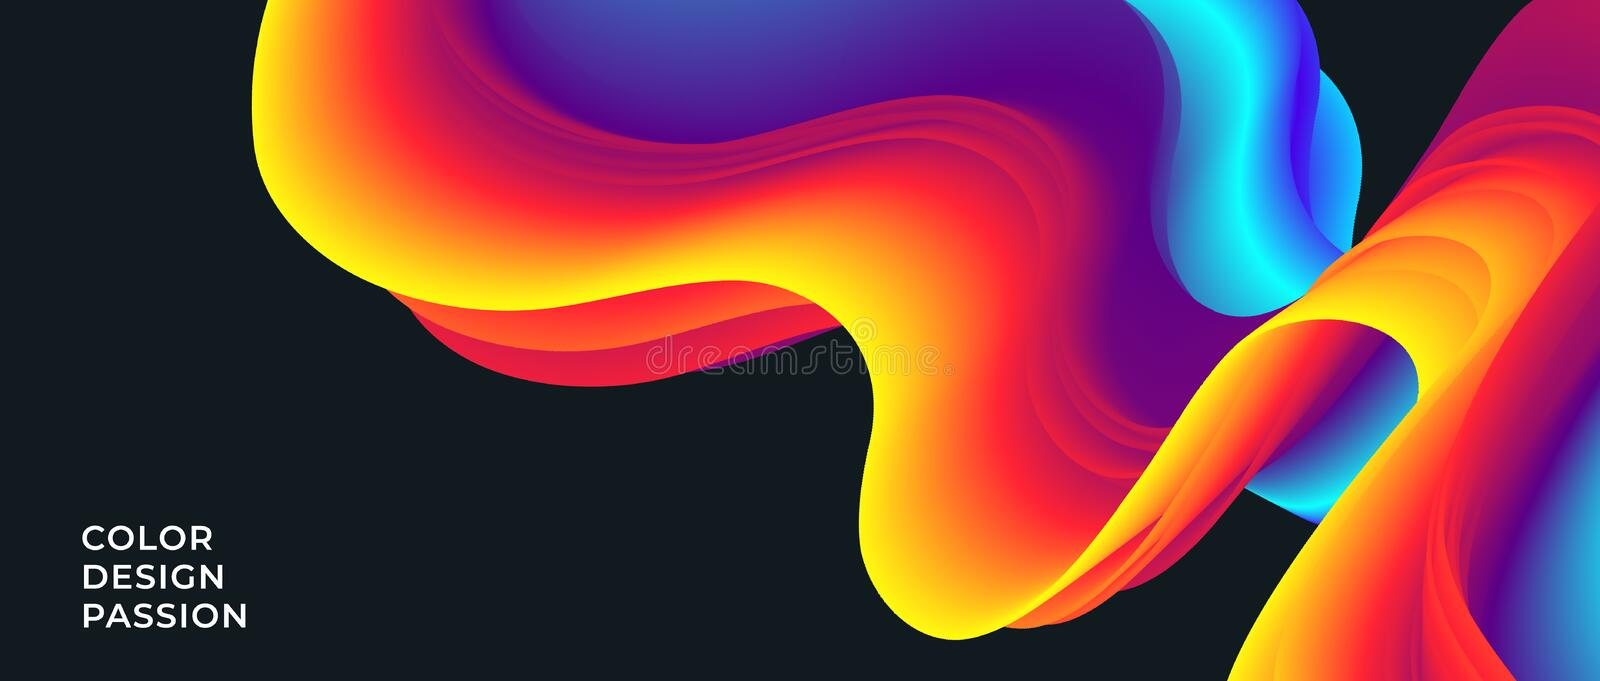 Background with an abstract liquid color flow stock illustration